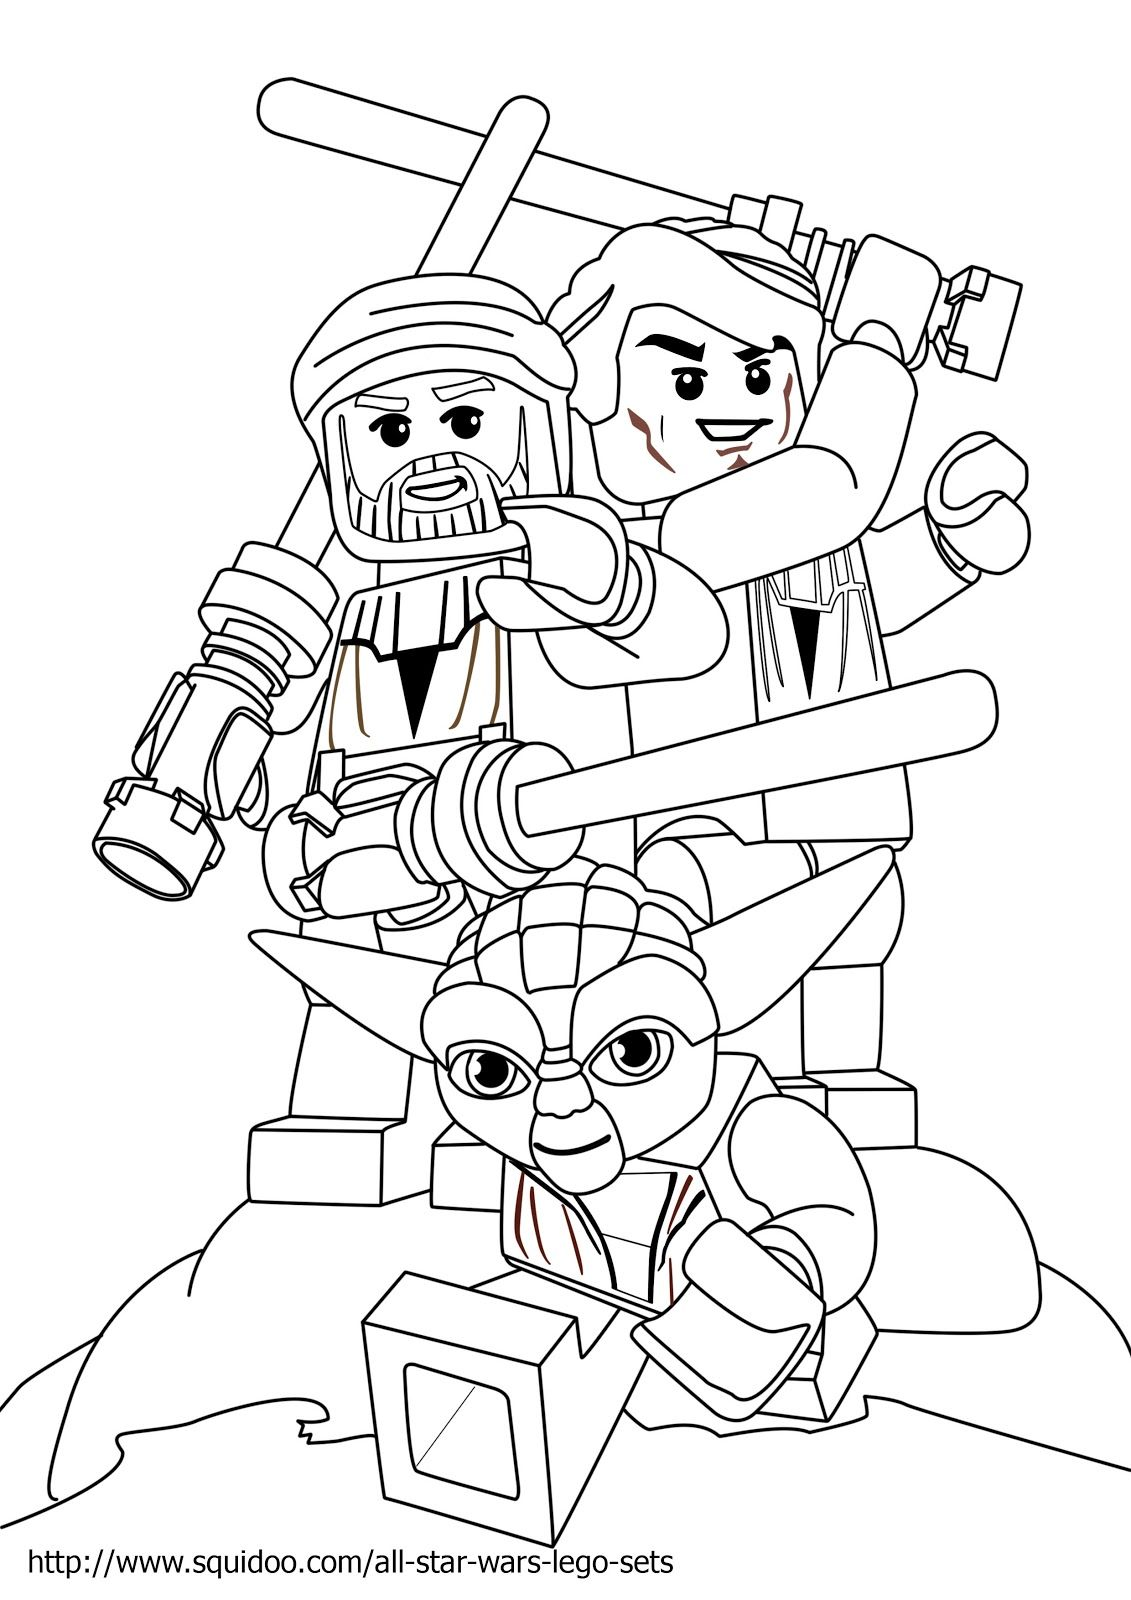 Lego Star Wars Yoda Coloring Pages Original size: 1131 x 1600 | I ...